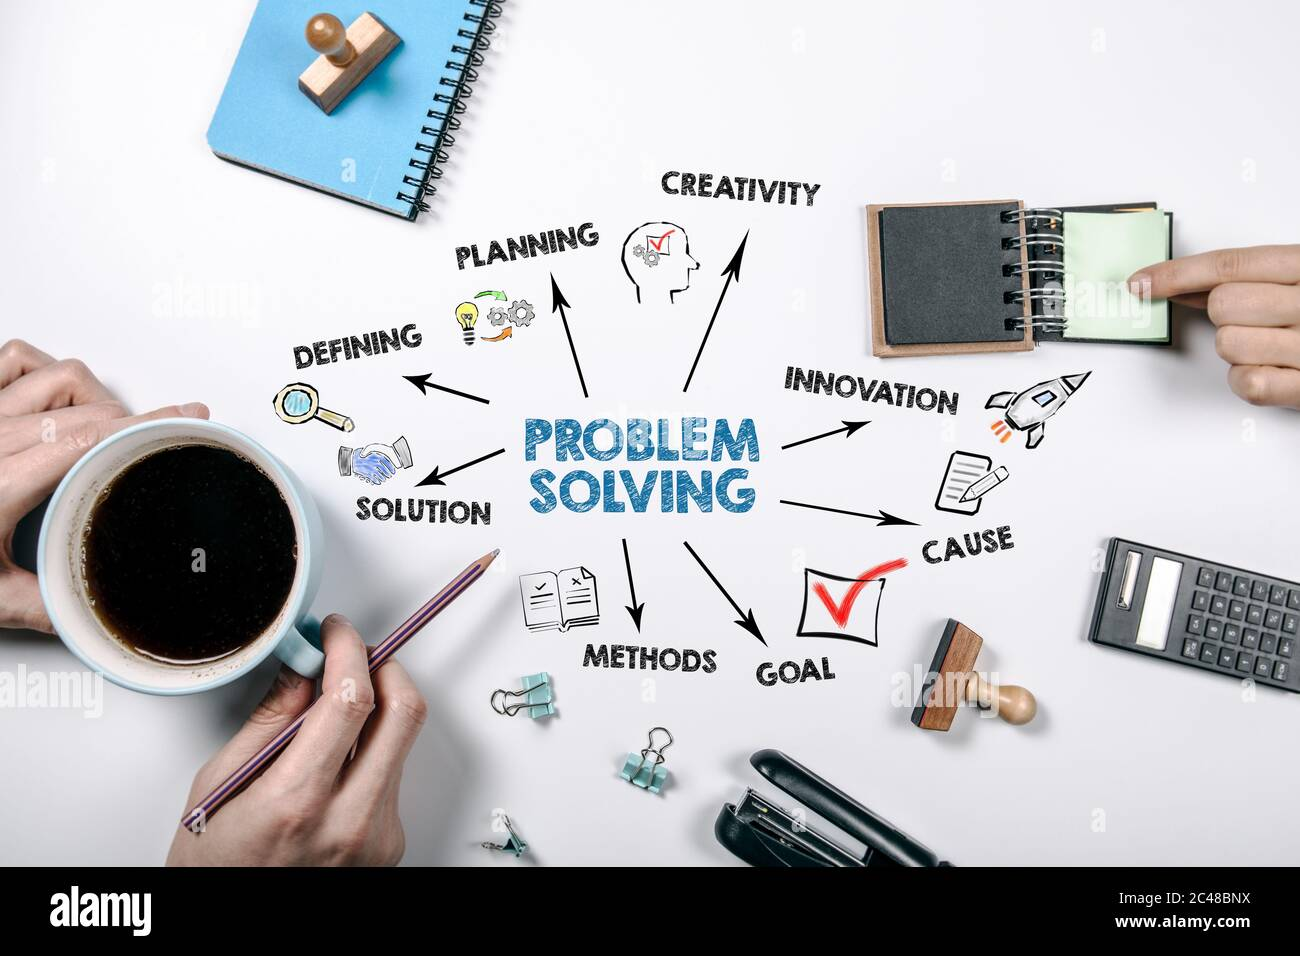 PROBLEM SOLVING. Defining, Creativity, Innovation and Solution concept. Chart with keywords and icons. Coffee mug and office supplies on a white table Stock Photo